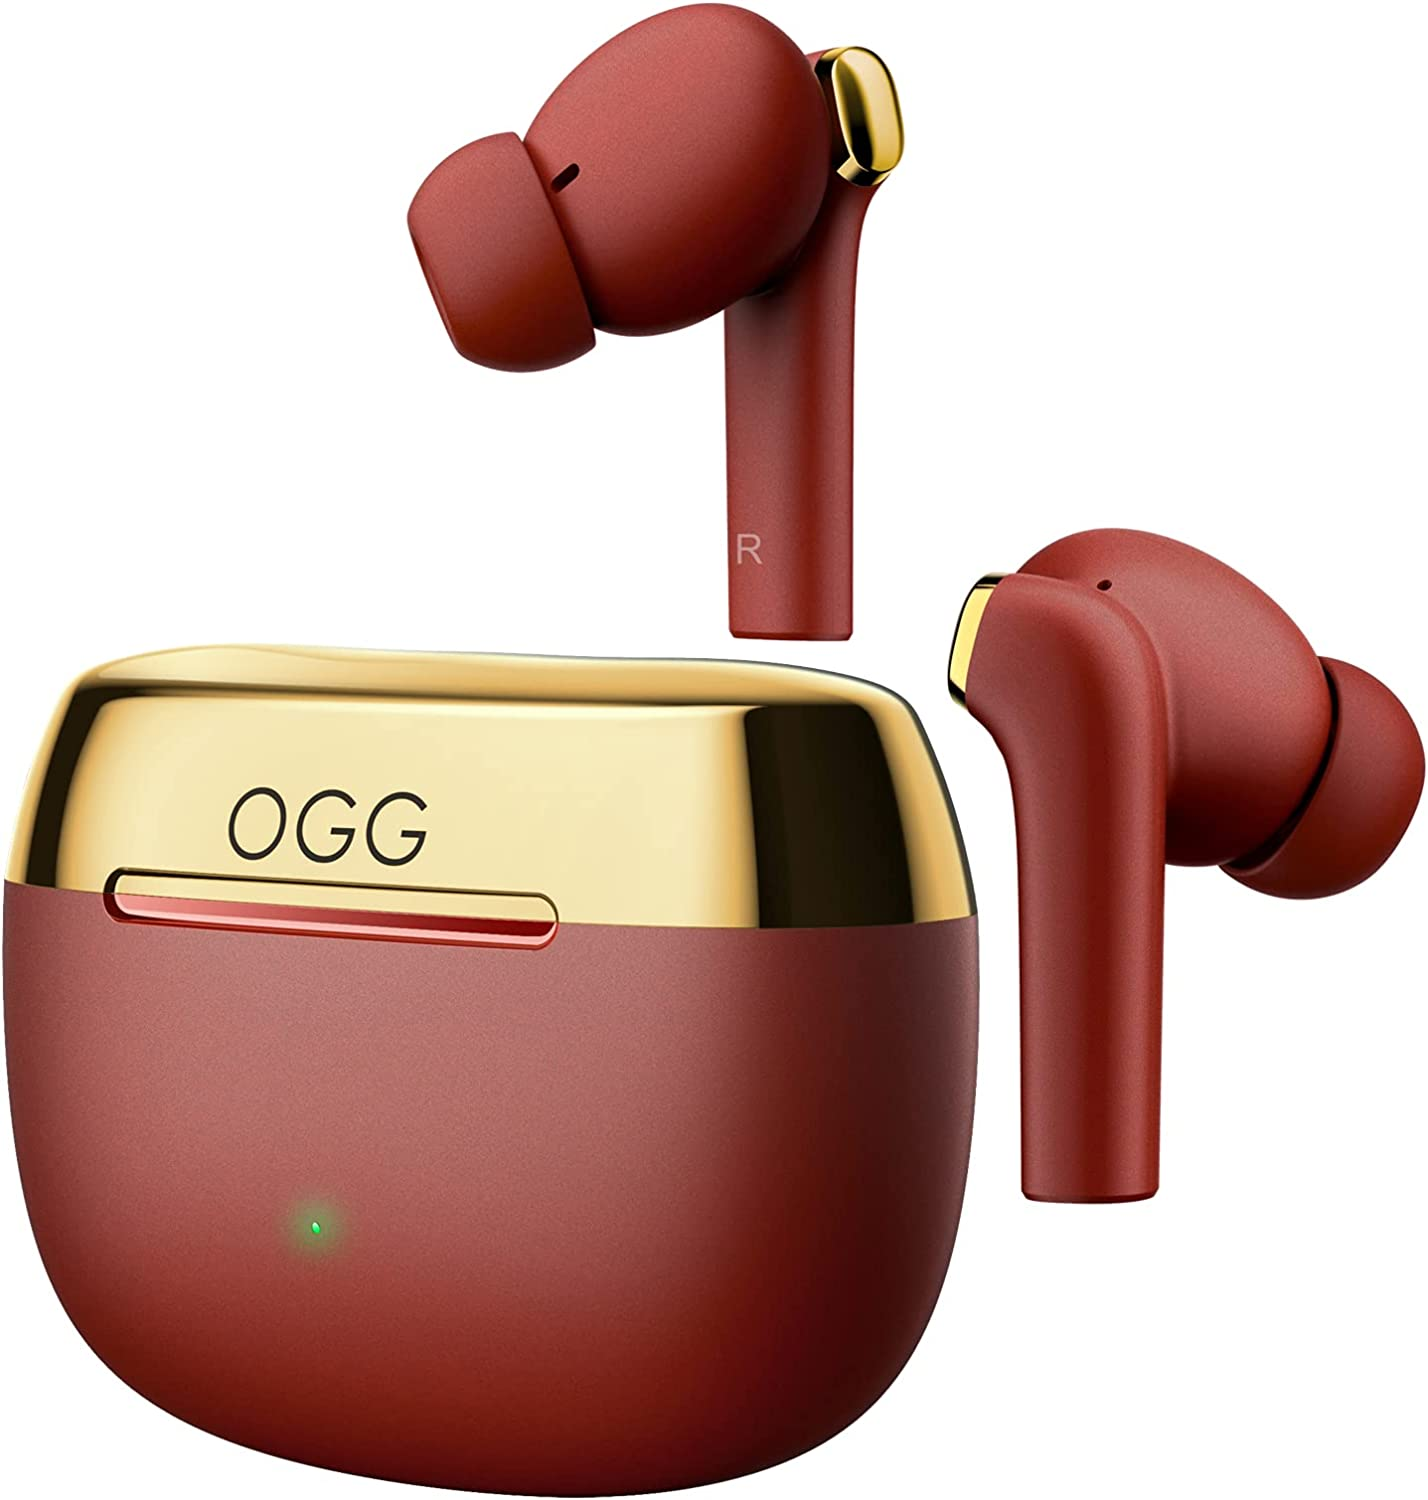 OGG K6 Wireless Earbuds ANC Bluetooth Earphones, Active Noise Cancelling Headset, Wireless Bluetooth Earbuds with Mart Touch,8 Hours Playback and 55 Extra Hours of Charging Case (Red)